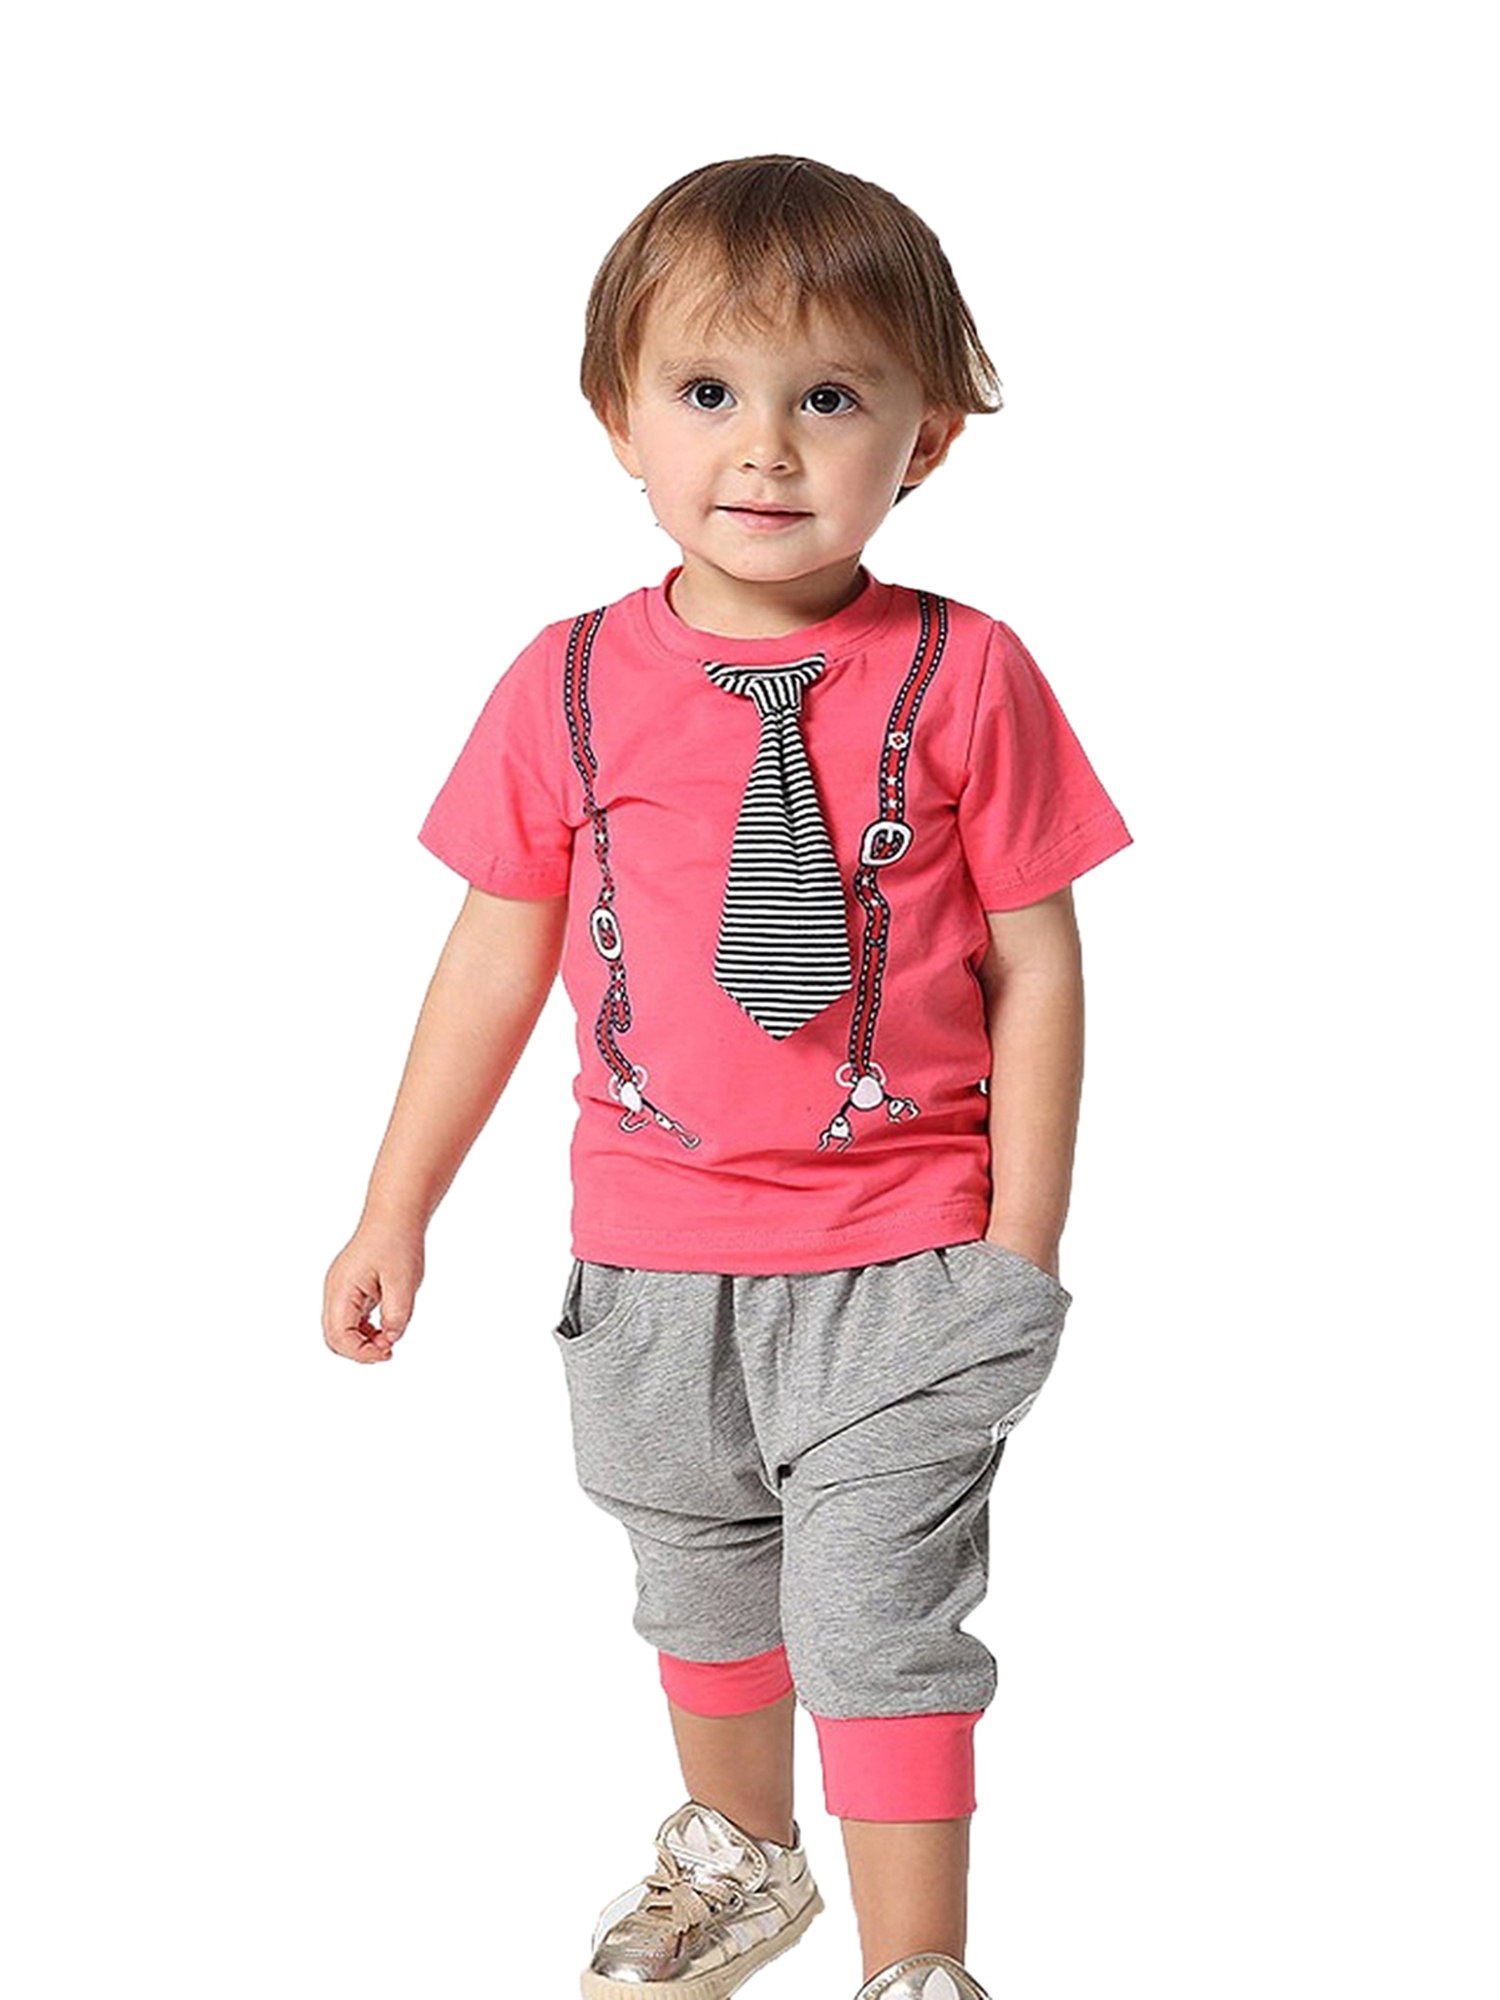 StylesILove Infant Toddler Kids Coral Tee With Printed Suspender And 3D Tie (110/2-3 Years)